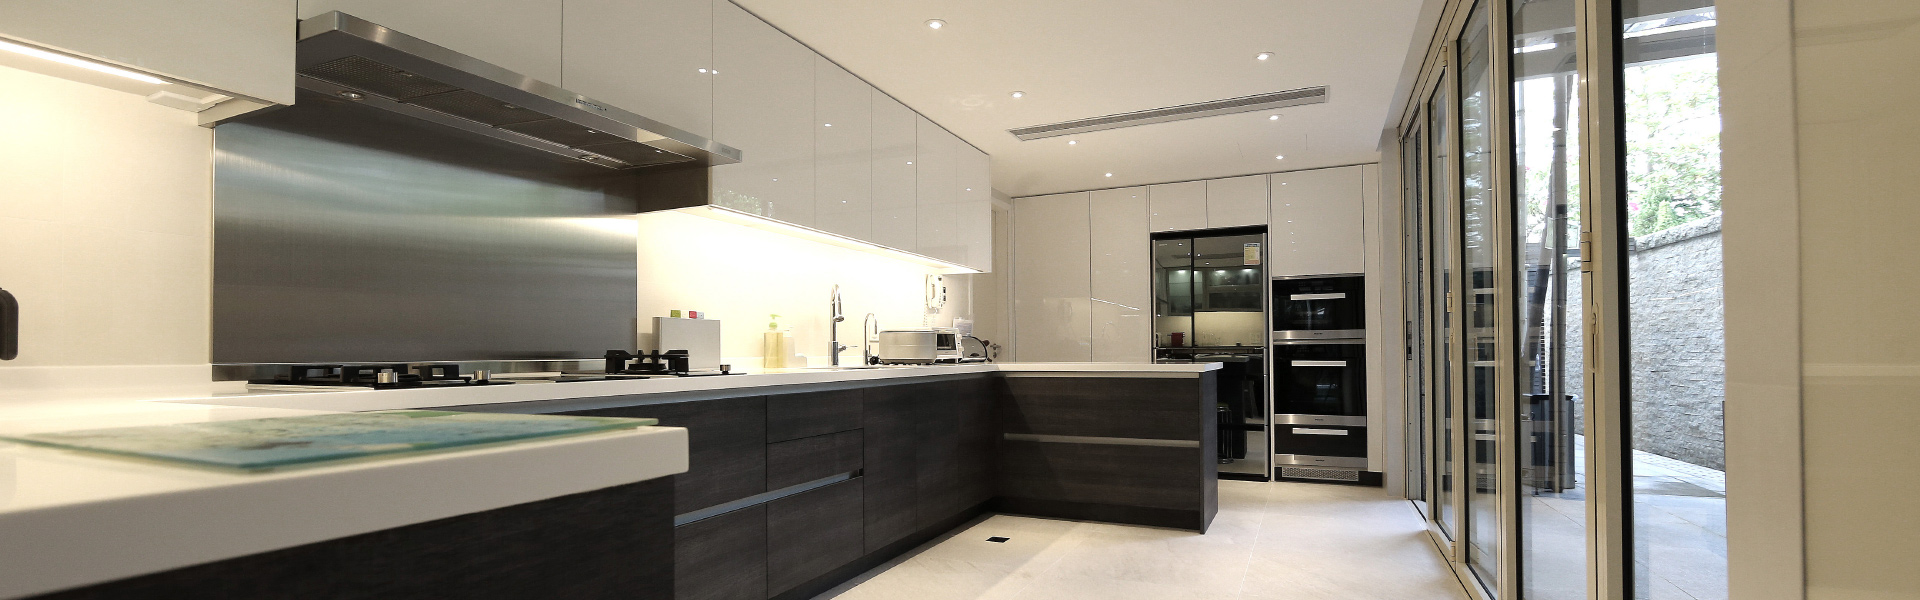 Kitchen design companies hong kong home and harmony Kitchen design companies hong kong